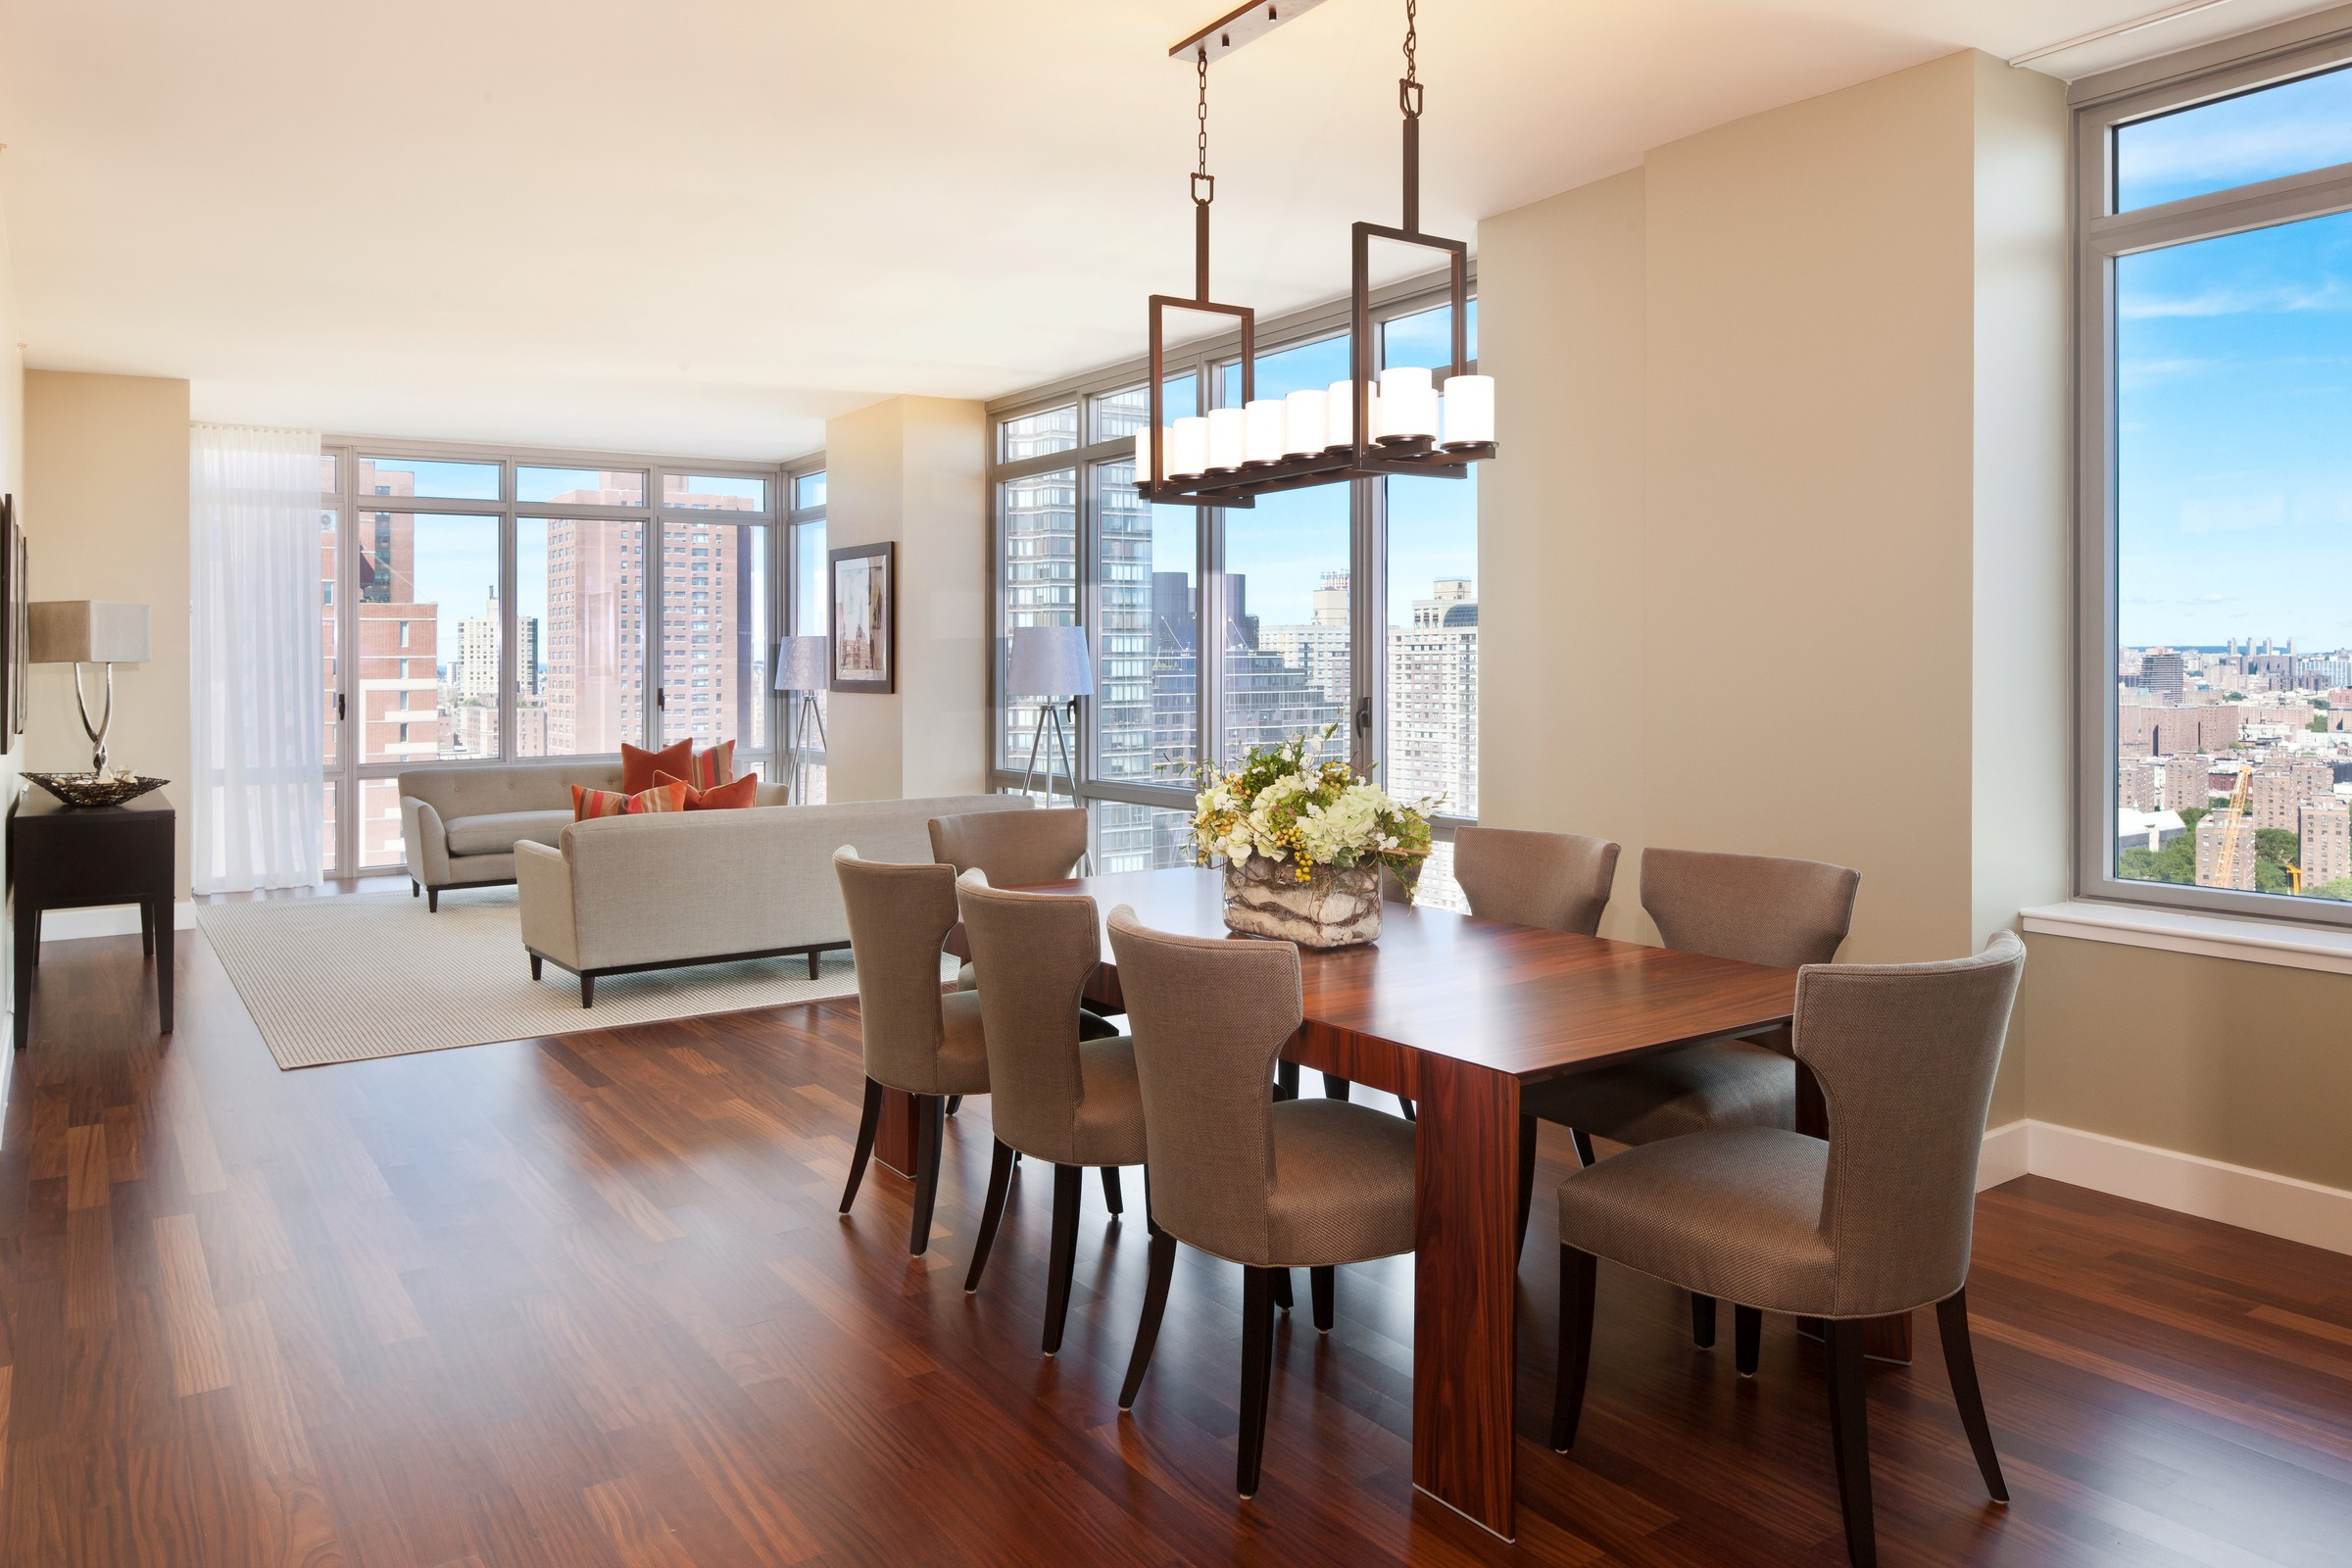 Top 13 Modern Dining Room Lighting Fixtures - HGNV.COM